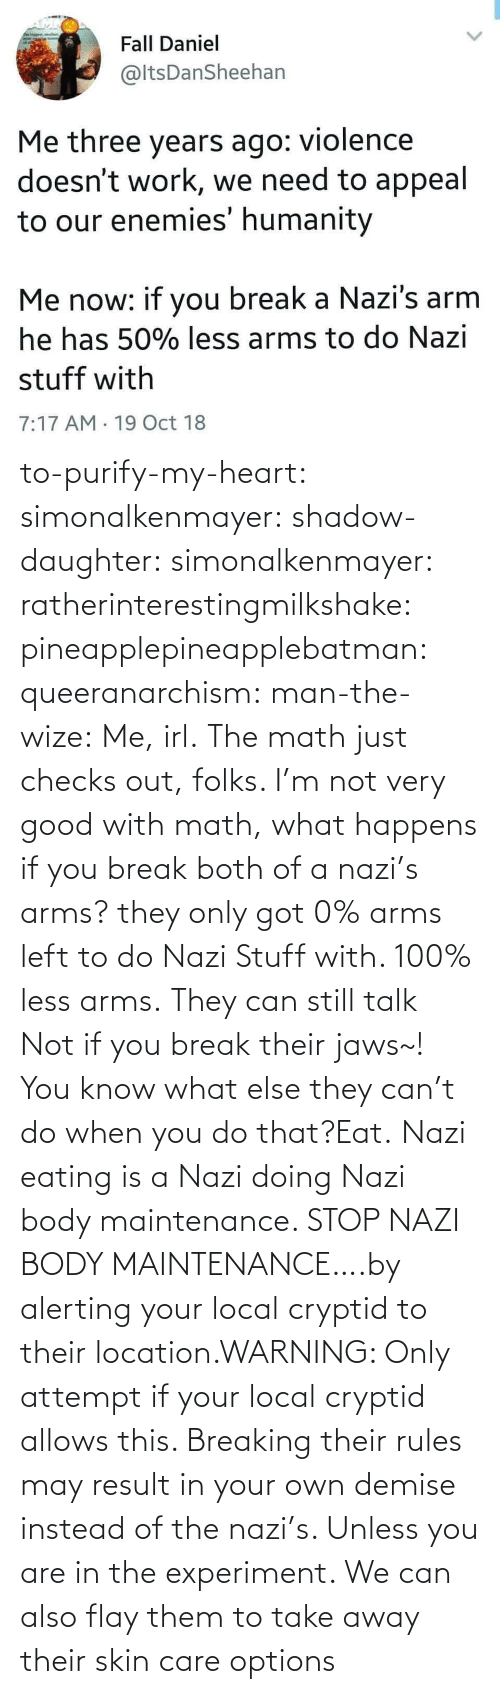 Very: to-purify-my-heart:  simonalkenmayer:  shadow-daughter: simonalkenmayer:  ratherinterestingmilkshake:  pineapplepineapplebatman:  queeranarchism:  man-the-wize: Me, irl. The math just checks out, folks.     I'm not very good with math, what happens if you break both of a nazi's arms?  they only got 0% arms left to do Nazi Stuff with. 100% less arms.  They can still talk  Not if you break their jaws~!  You know what else they can't do when you do that?Eat.   Nazi eating is a Nazi doing Nazi body maintenance. STOP NAZI BODY MAINTENANCE….by alerting your local cryptid to their location.WARNING: Only attempt if your local cryptid allows this. Breaking their rules may result in your own demise instead of the nazi's. Unless you are in the experiment.    We can also flay them to take away their skin care options